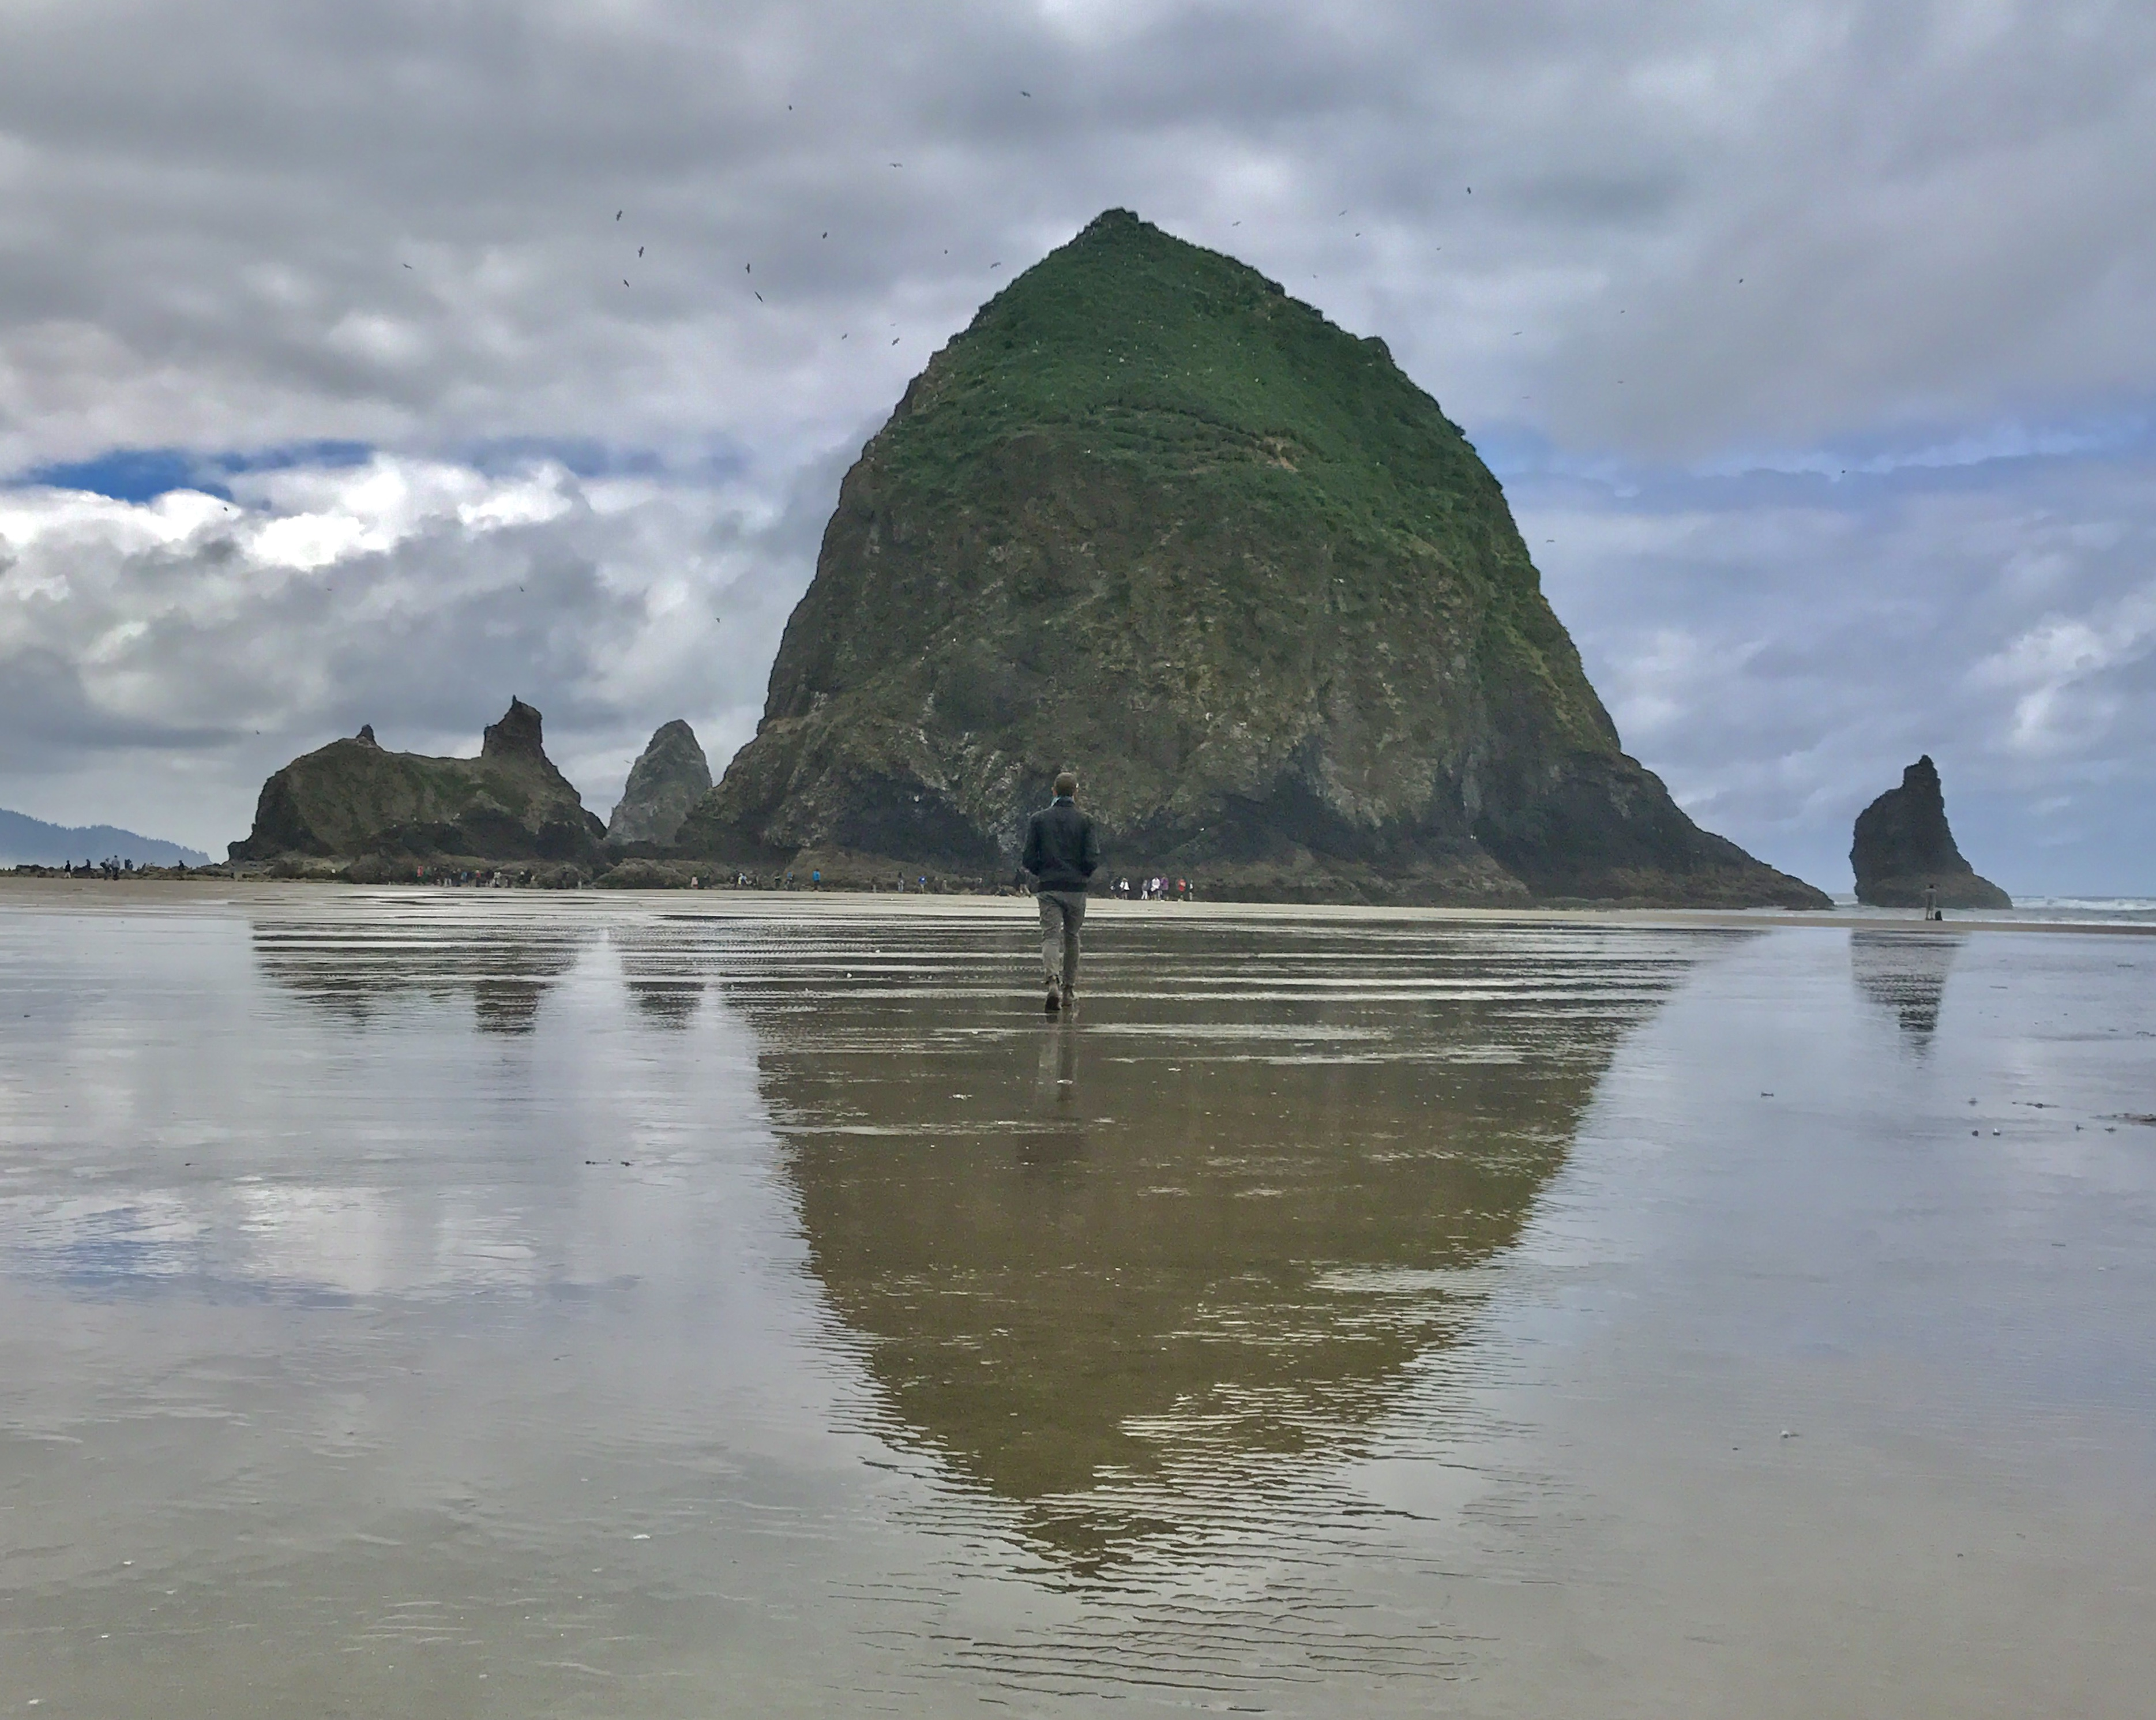 A giant rock rises from the wet shoreline and dominates the horizon.